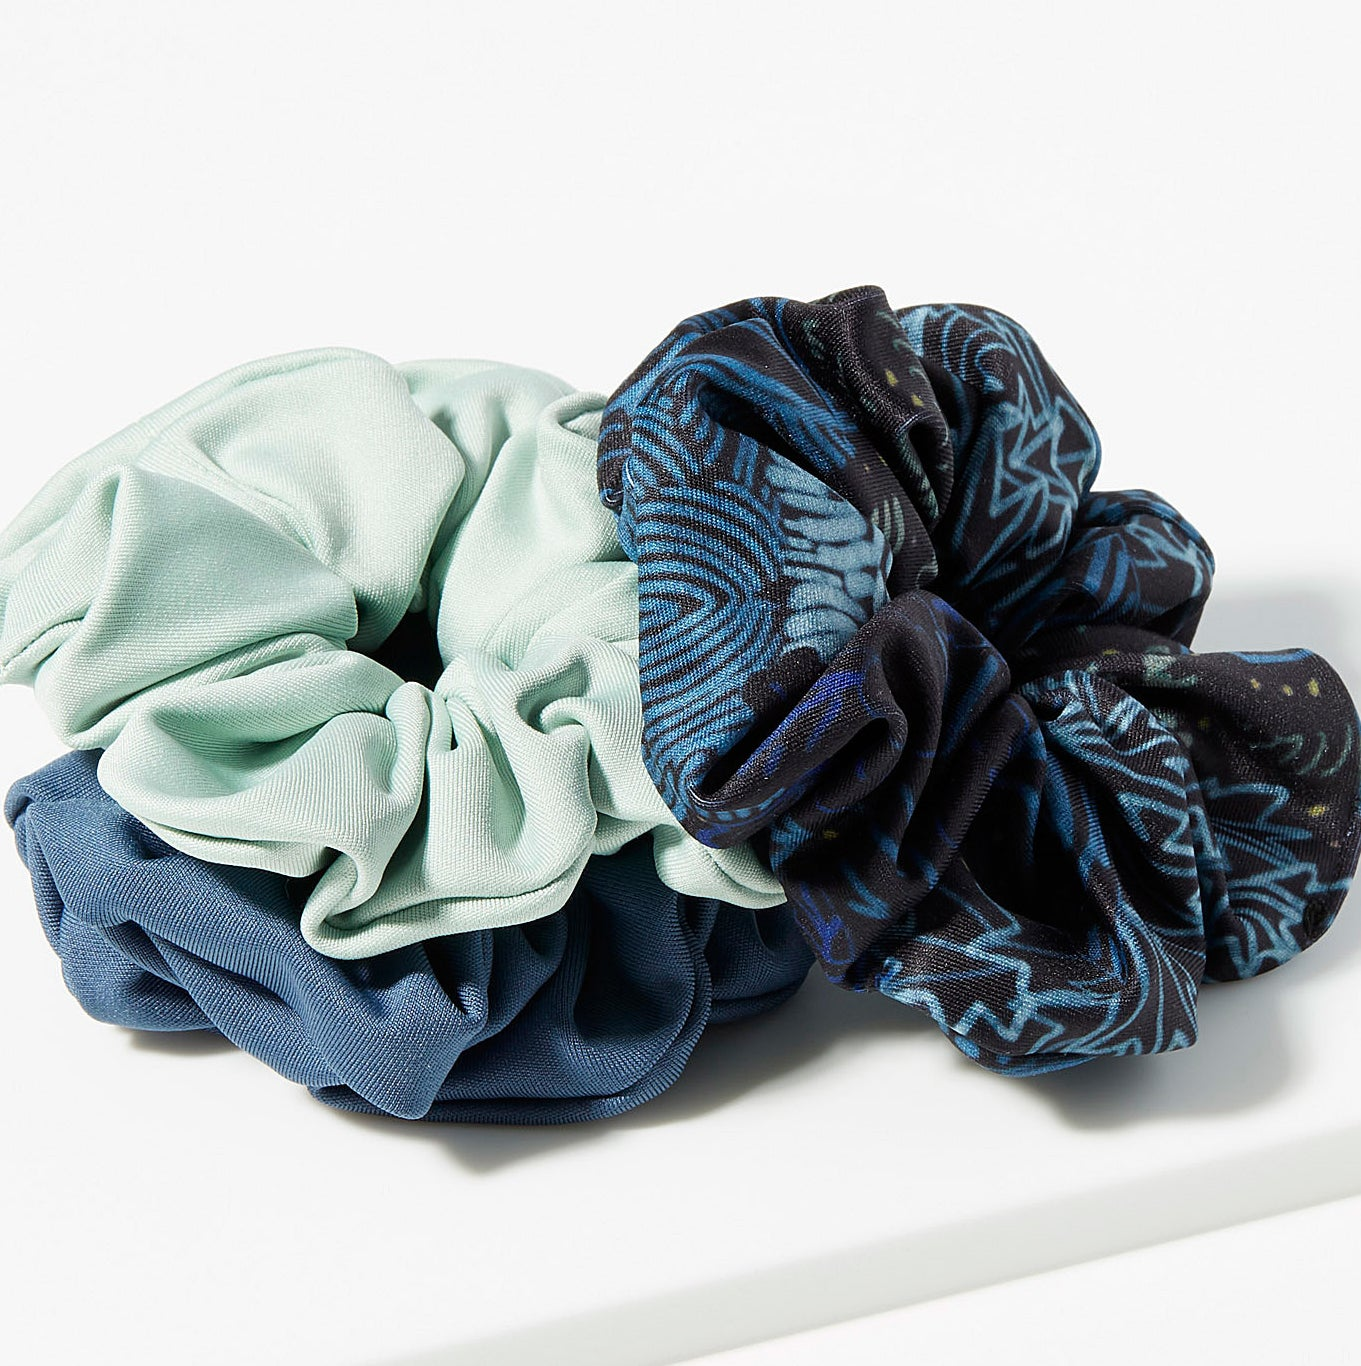 The three scrunchies in a pile on a table